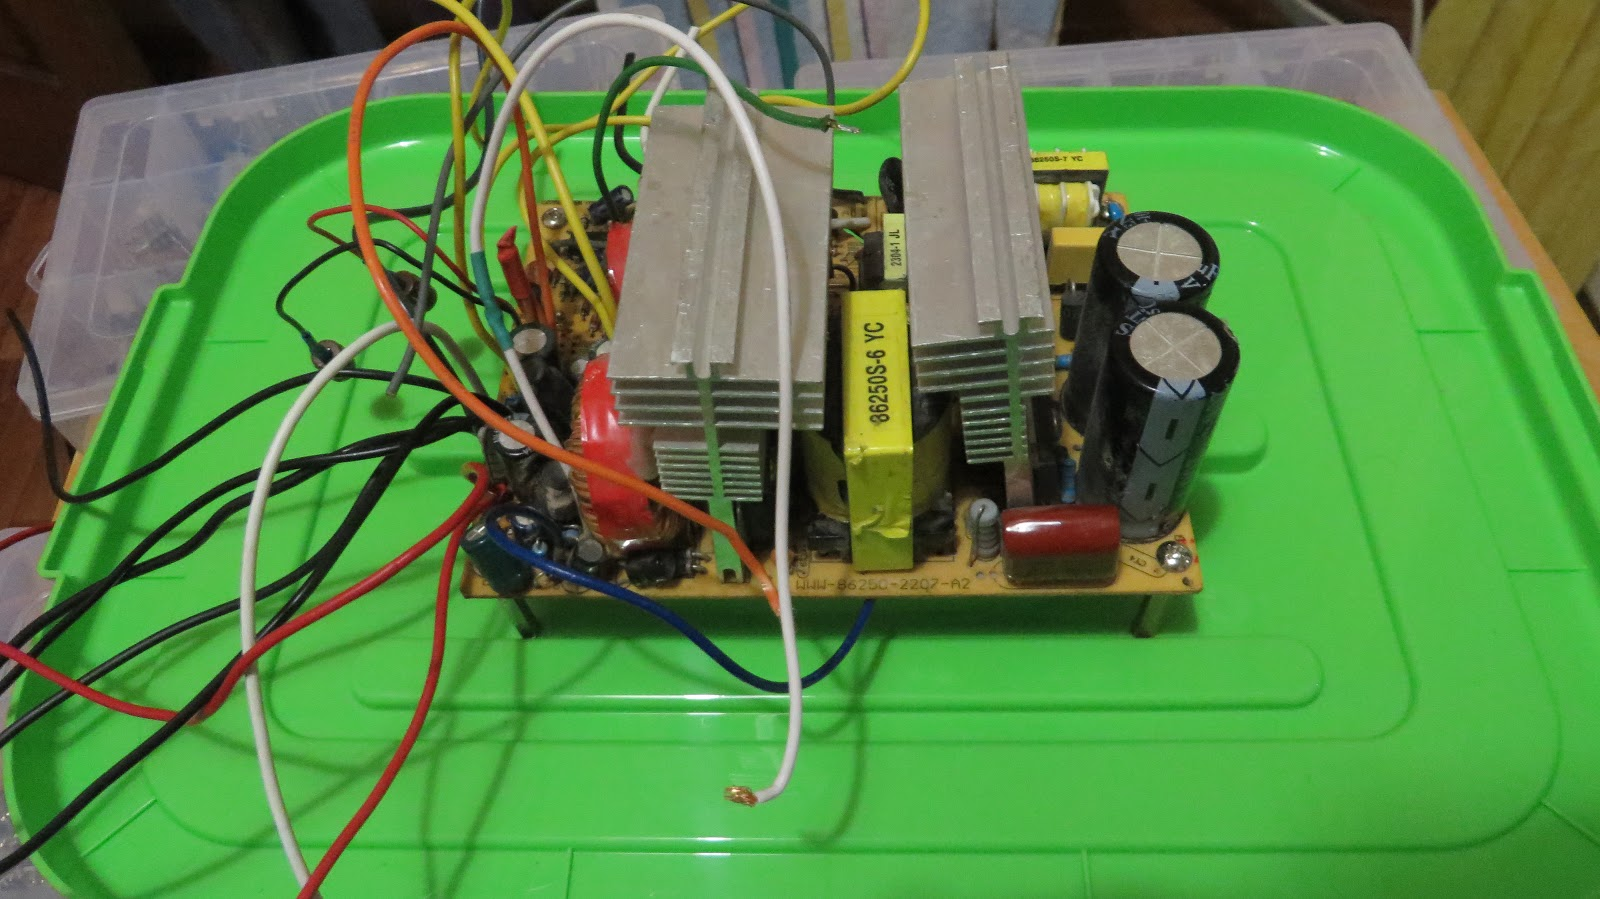 Heap But Ugly Variable Bench Power Supply 1 To 9v Desktop Attach The Box Less Psu Lid